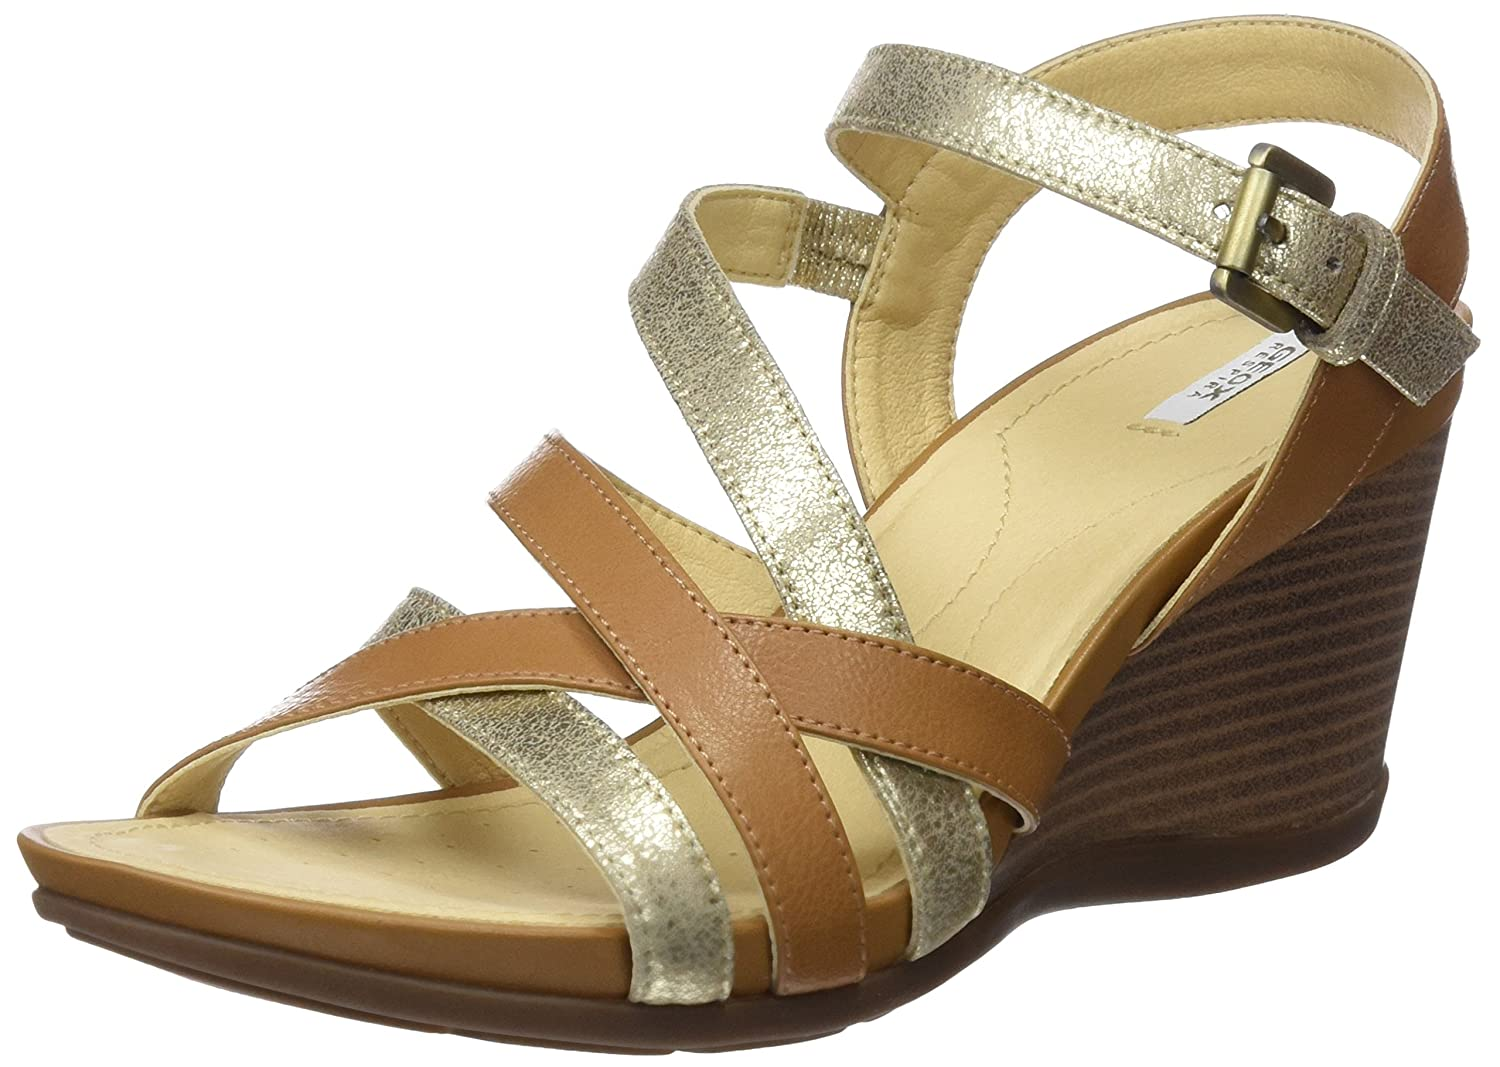 Geox Women's D DOROTHA Fashion M Sandals 39 EU/8 M Fashion US|Curry/ Lt Taupe B0766BLW47 5d8ad7